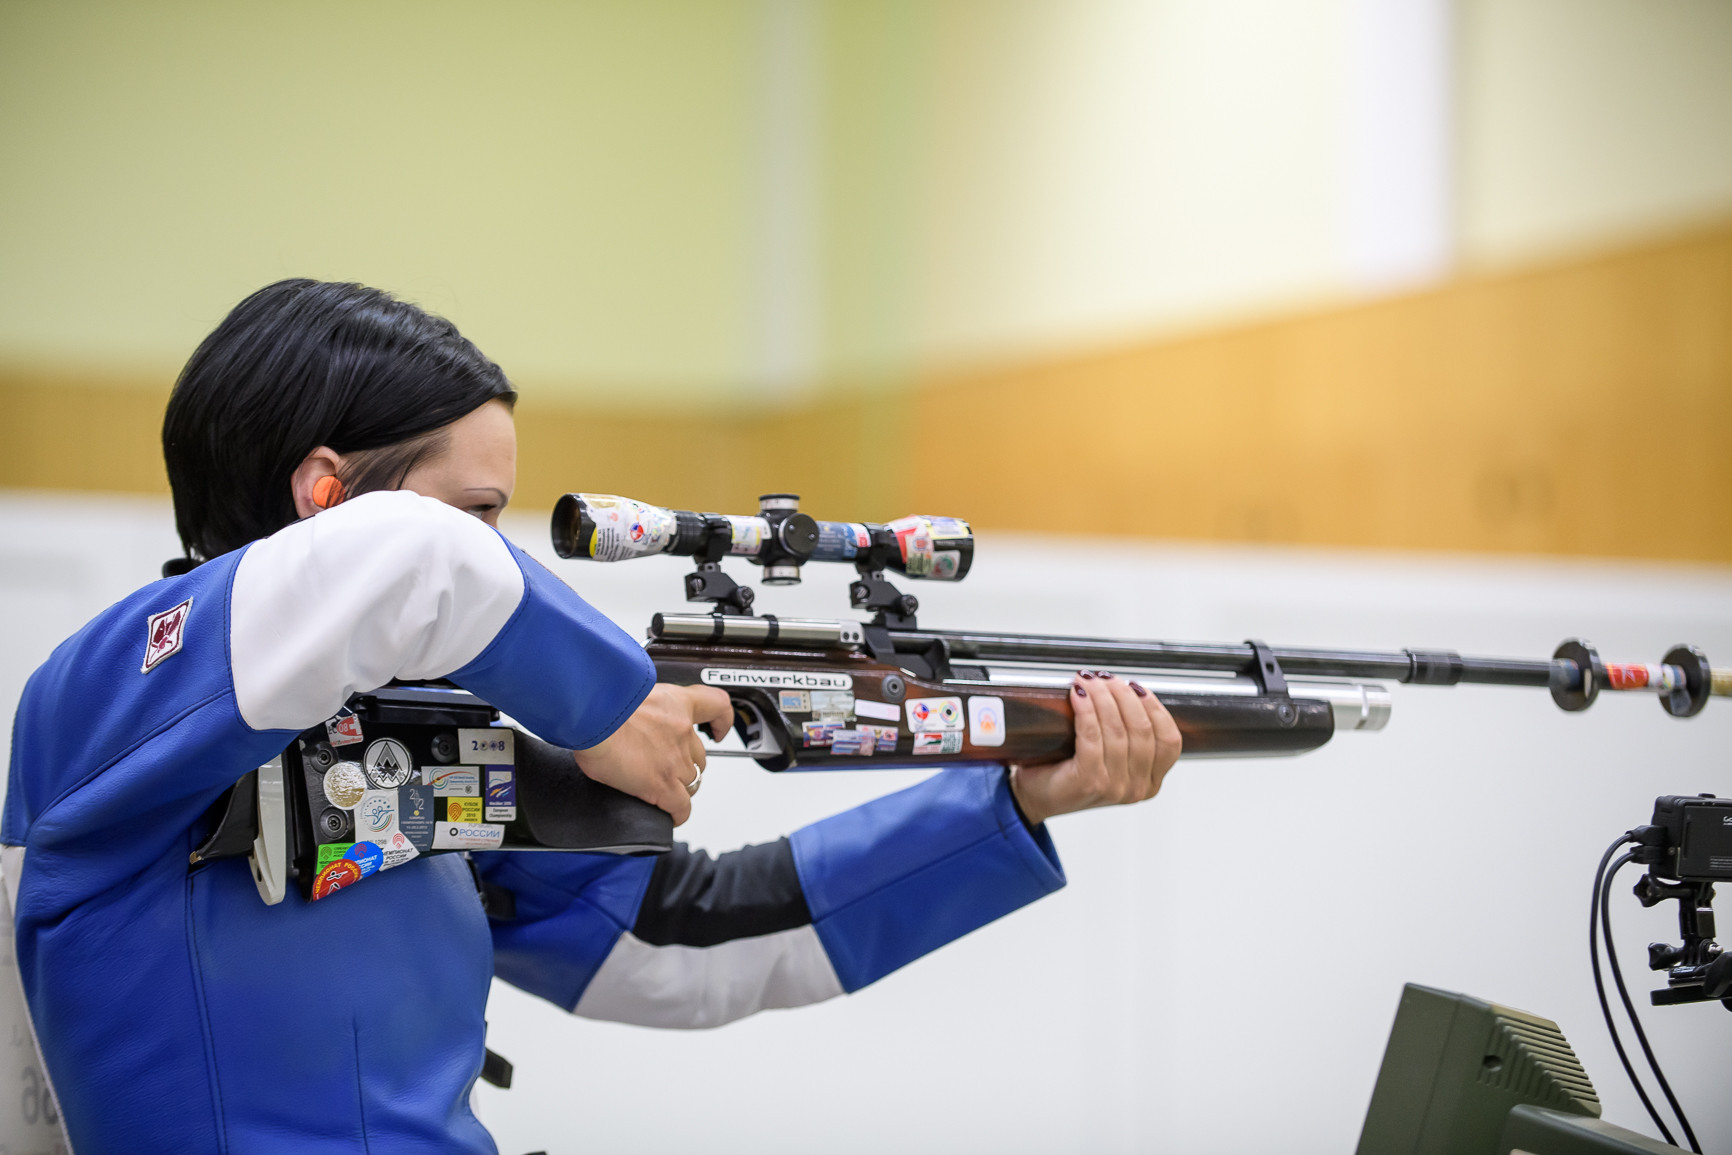 Julia Eydenzon secured Russia's first gold medal of the European Shooting Championships ©ISSF/Flickr